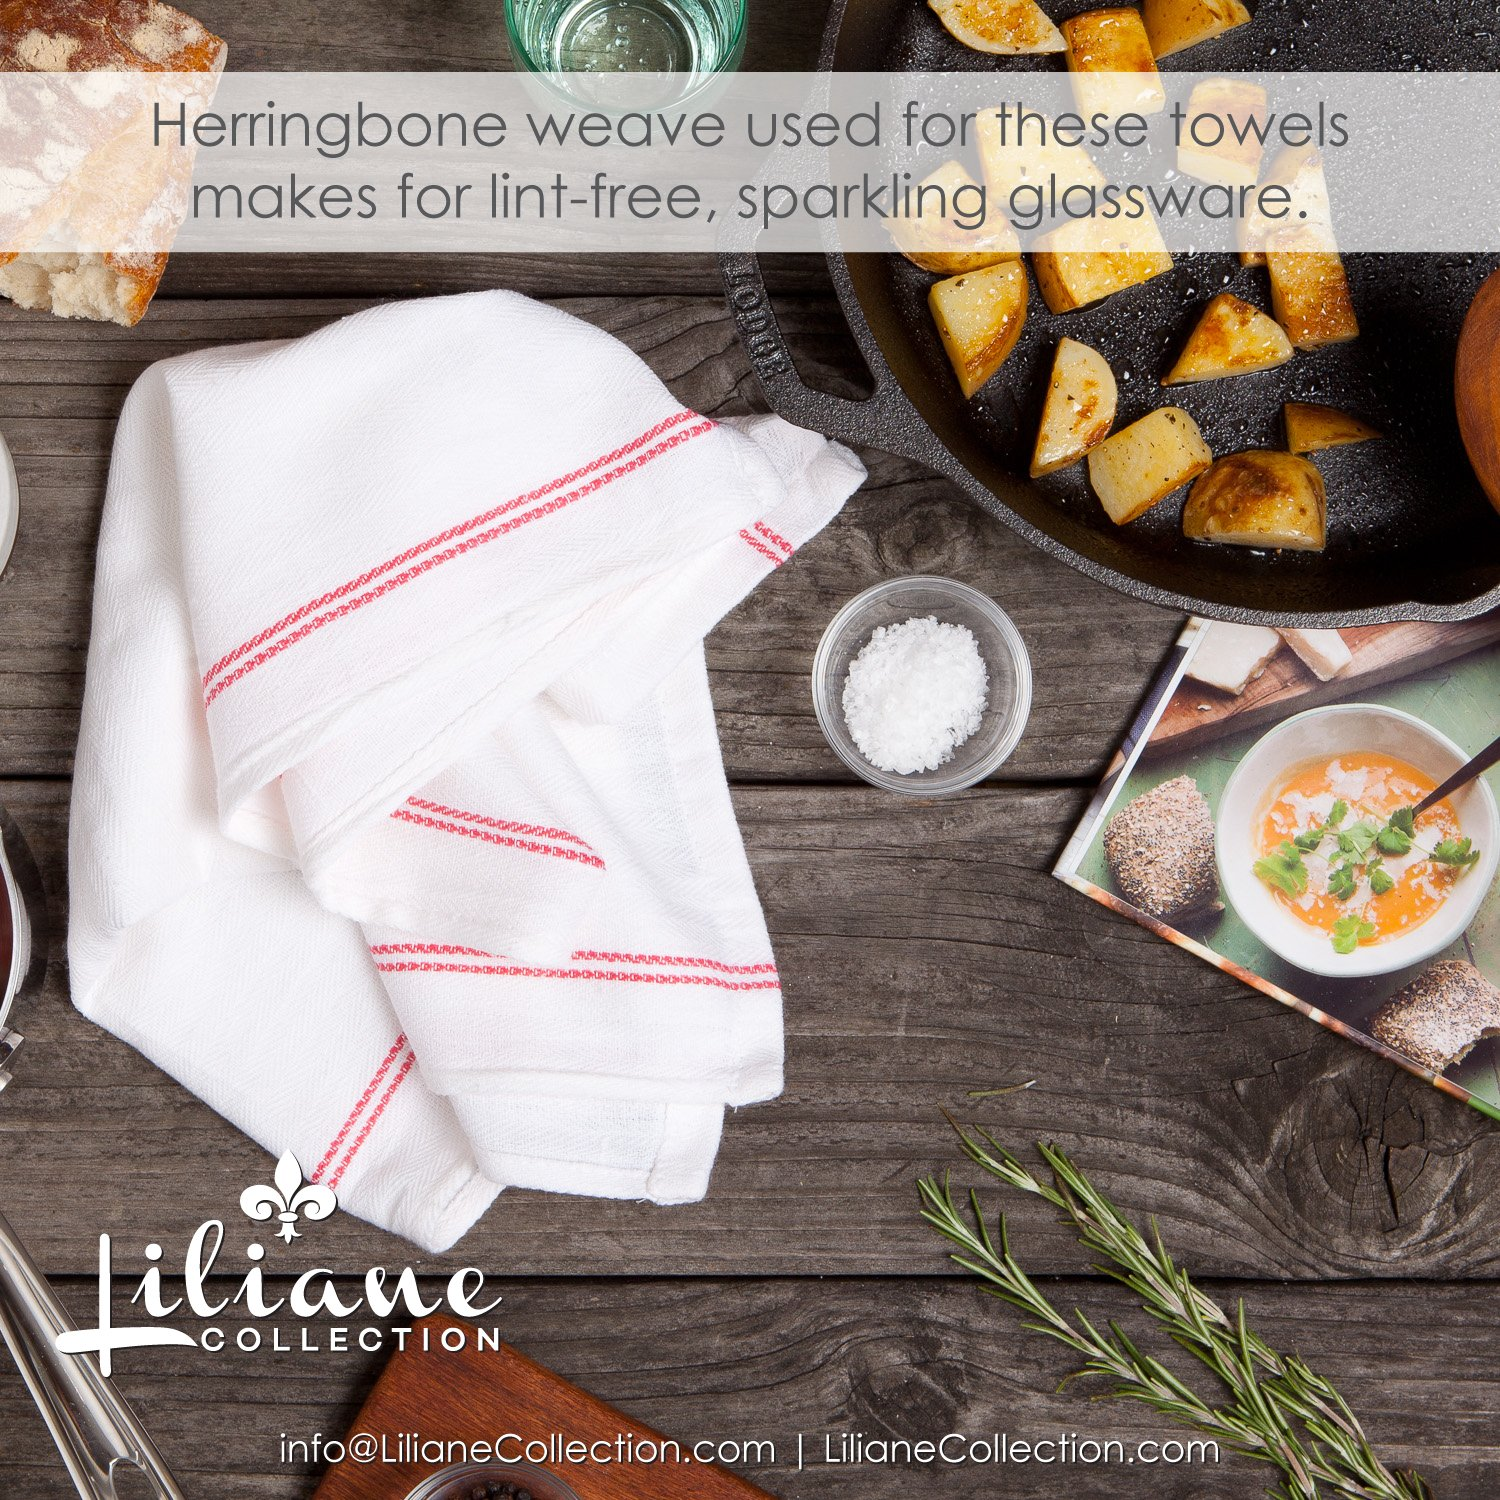 Liliane Collection Red Kitchen Dish Towels (13 pack) - Commercial Grade Absorbent 100% 2-ply Cotton Kitchen Towels (14''x27'') - Classic White Tea Towels with Red Side Stripes by by Liliane Collection (Image #3)